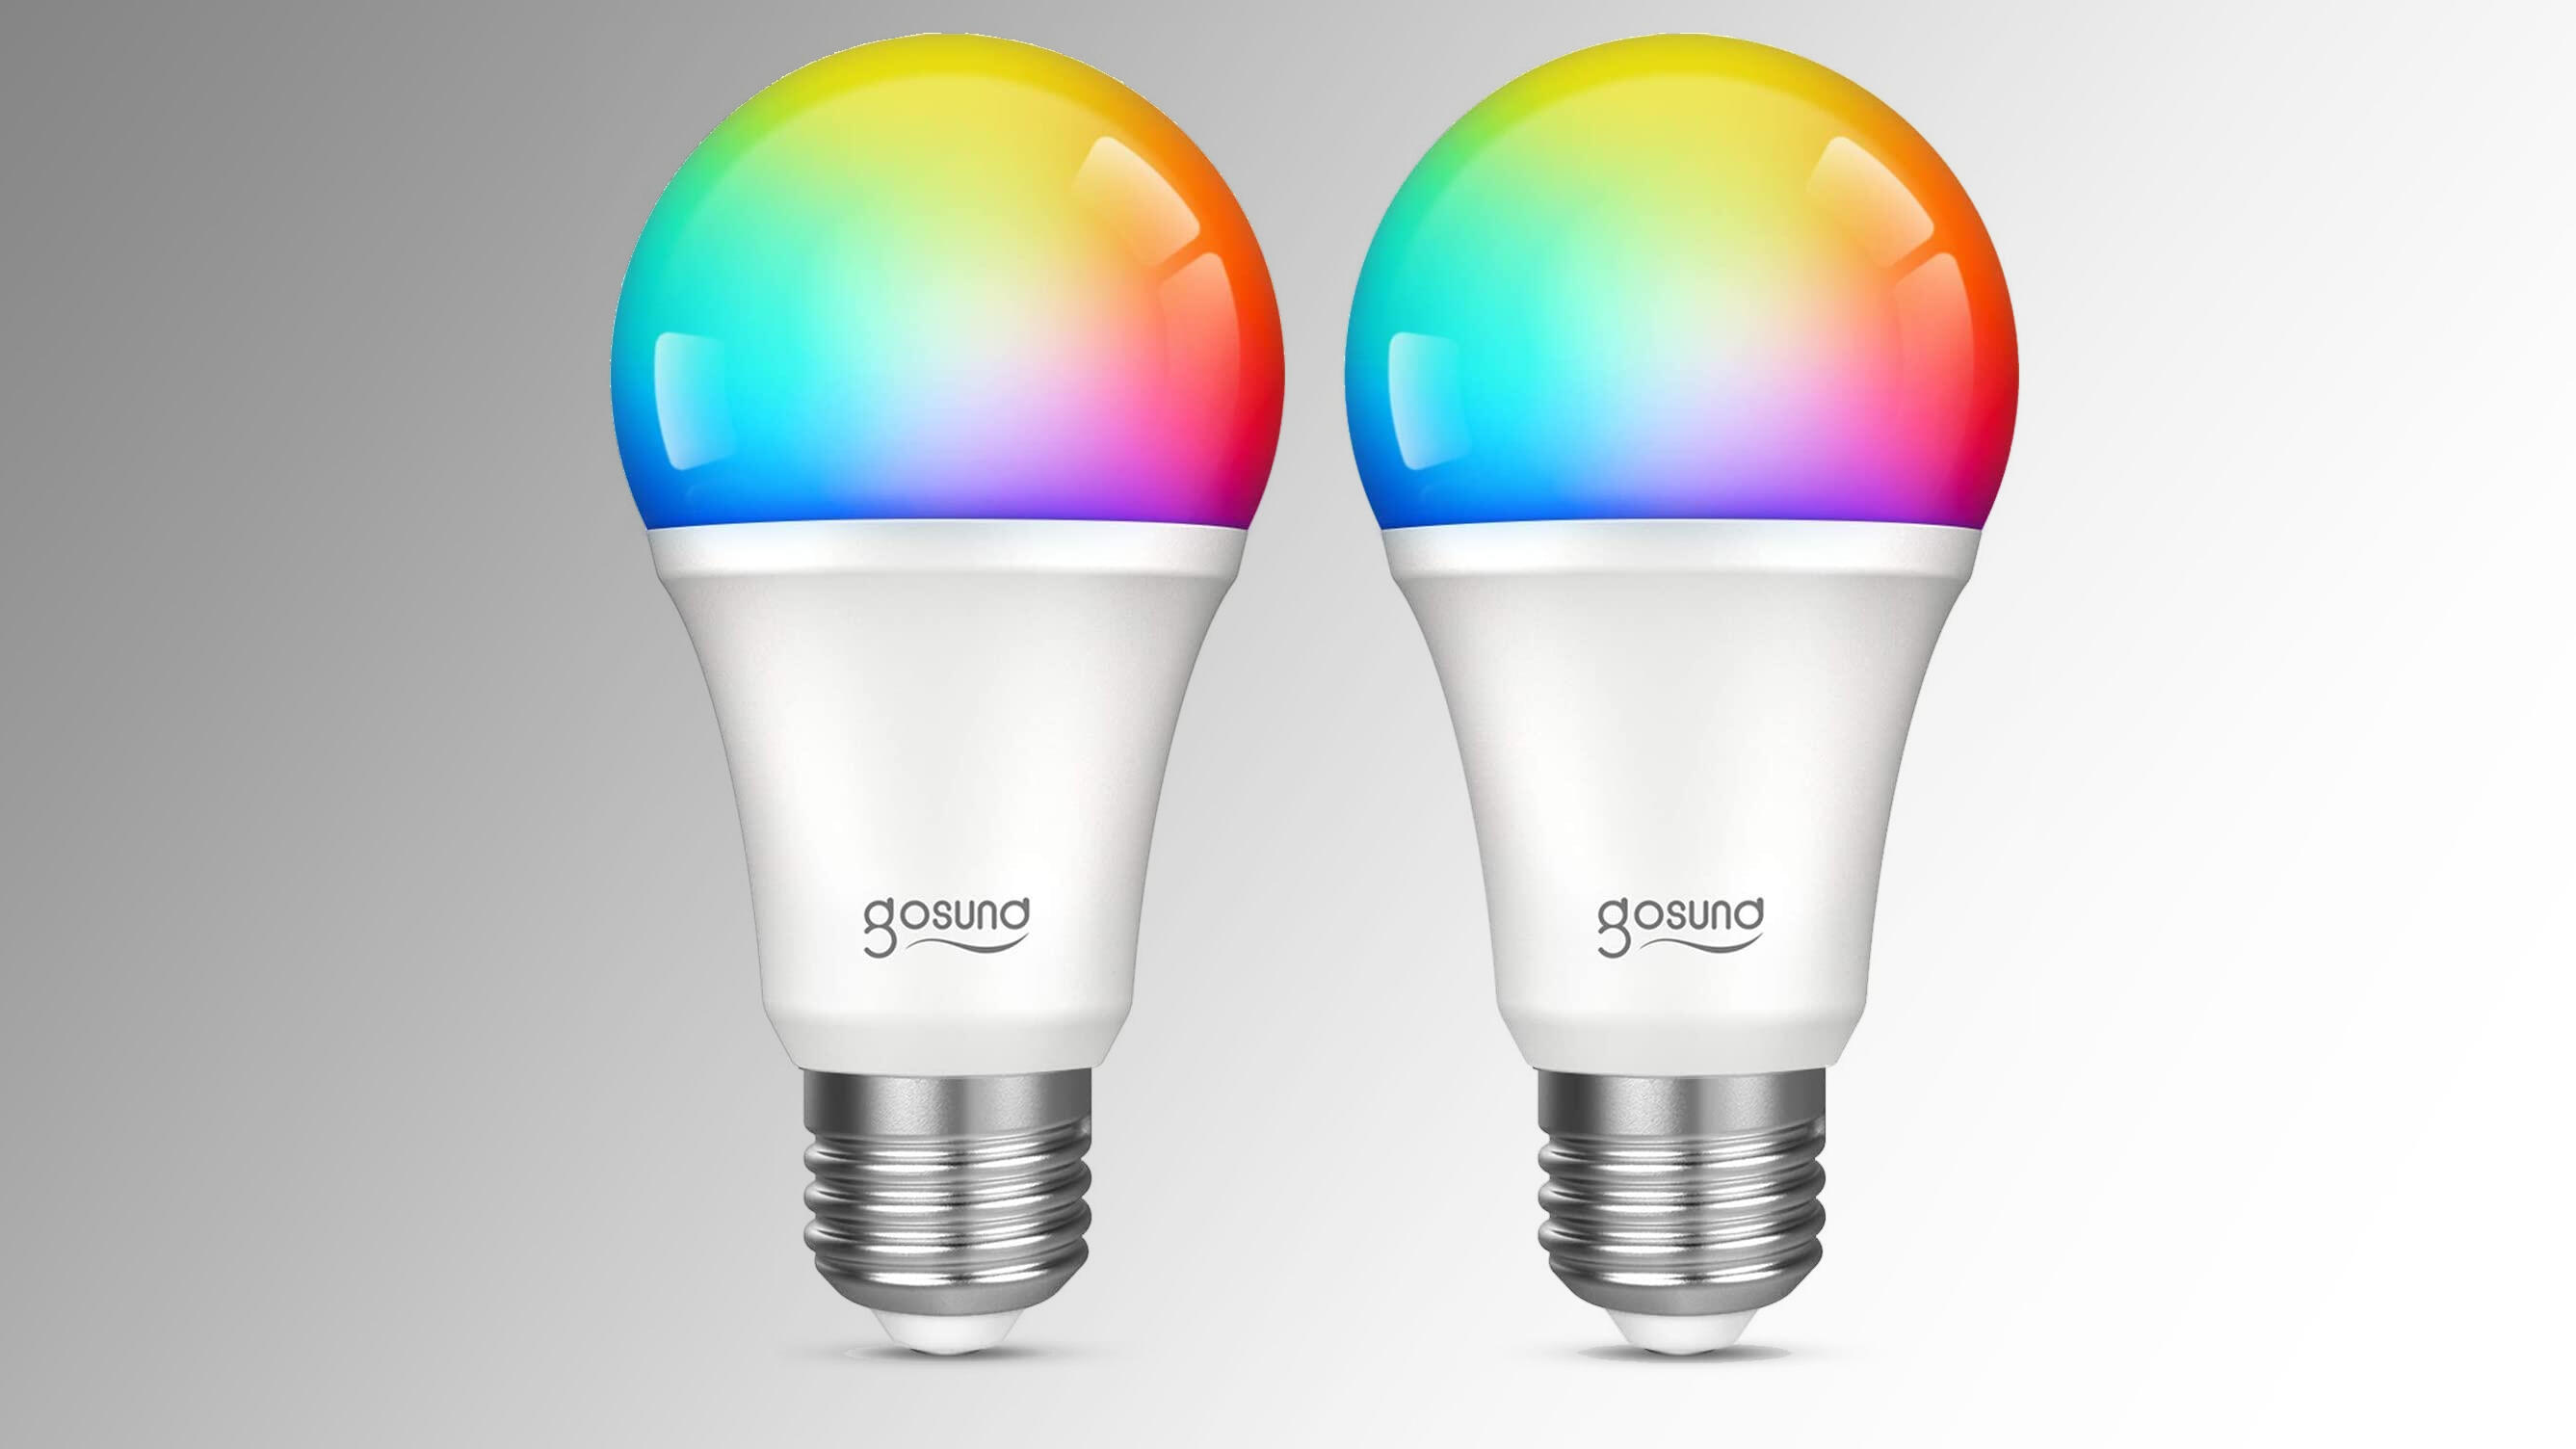 Get a pair of smart light bulbs for less than $2 each     - CNET